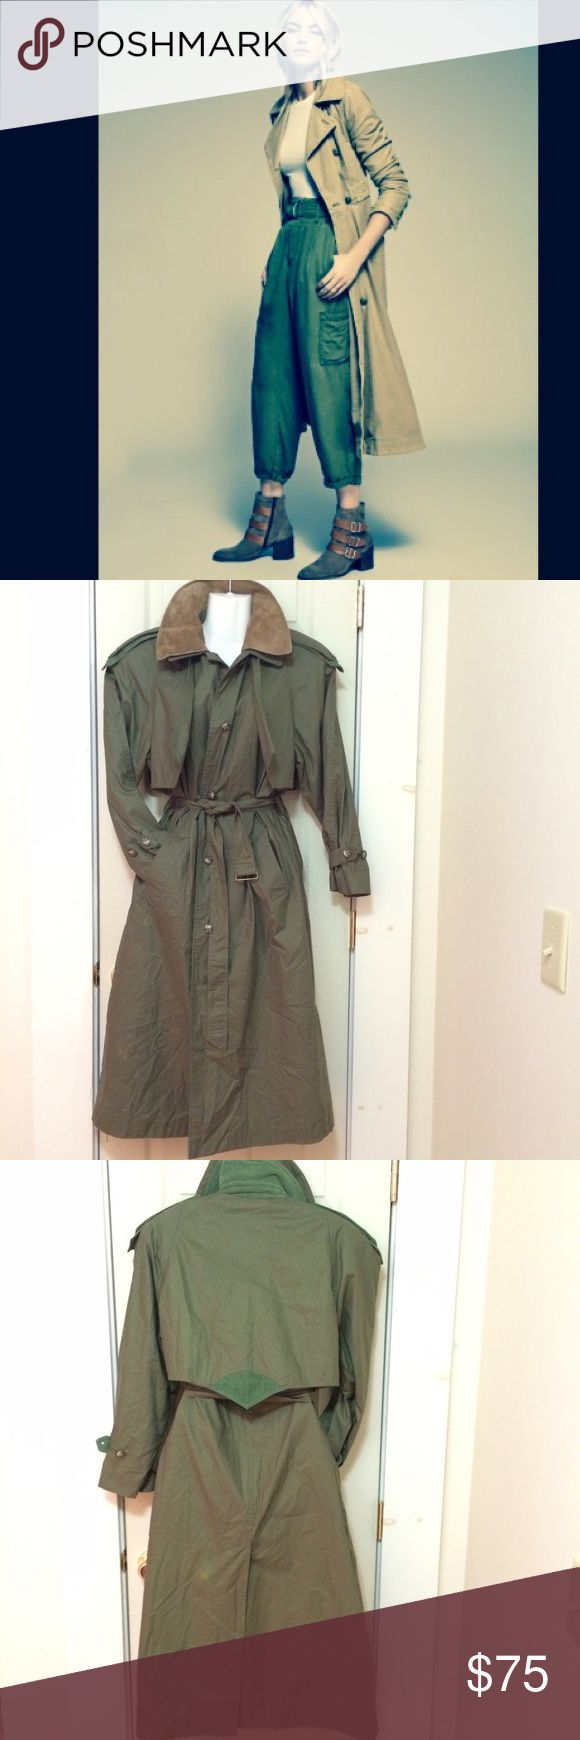 "❤️BEAUTIFUL LONG MAXI TRENCH DUSTER COAT JACKET❤️ ❤️BEAUTIFUL LONG MAXI TRENCH DUSTER COAT JACKET  💗ONE OF A KIND UNIQUE VINTAGE  ❤️COMFORTABLE  💗EXCELLENT CONDITION 💗STYLISH & FUNCTIONAL Suede Collar,Corduroy Collar, sleeve,shoulder &back details  -One Size Fits Most.Tagged size 6 -aprox.47""length -Aprox. 21""laying flat from armpit to armpit,chest  *Not Free People Anthropologie *Brand MISTY HARBOR light areas on back,not noticeable when wearing  TAG:army green olive…"